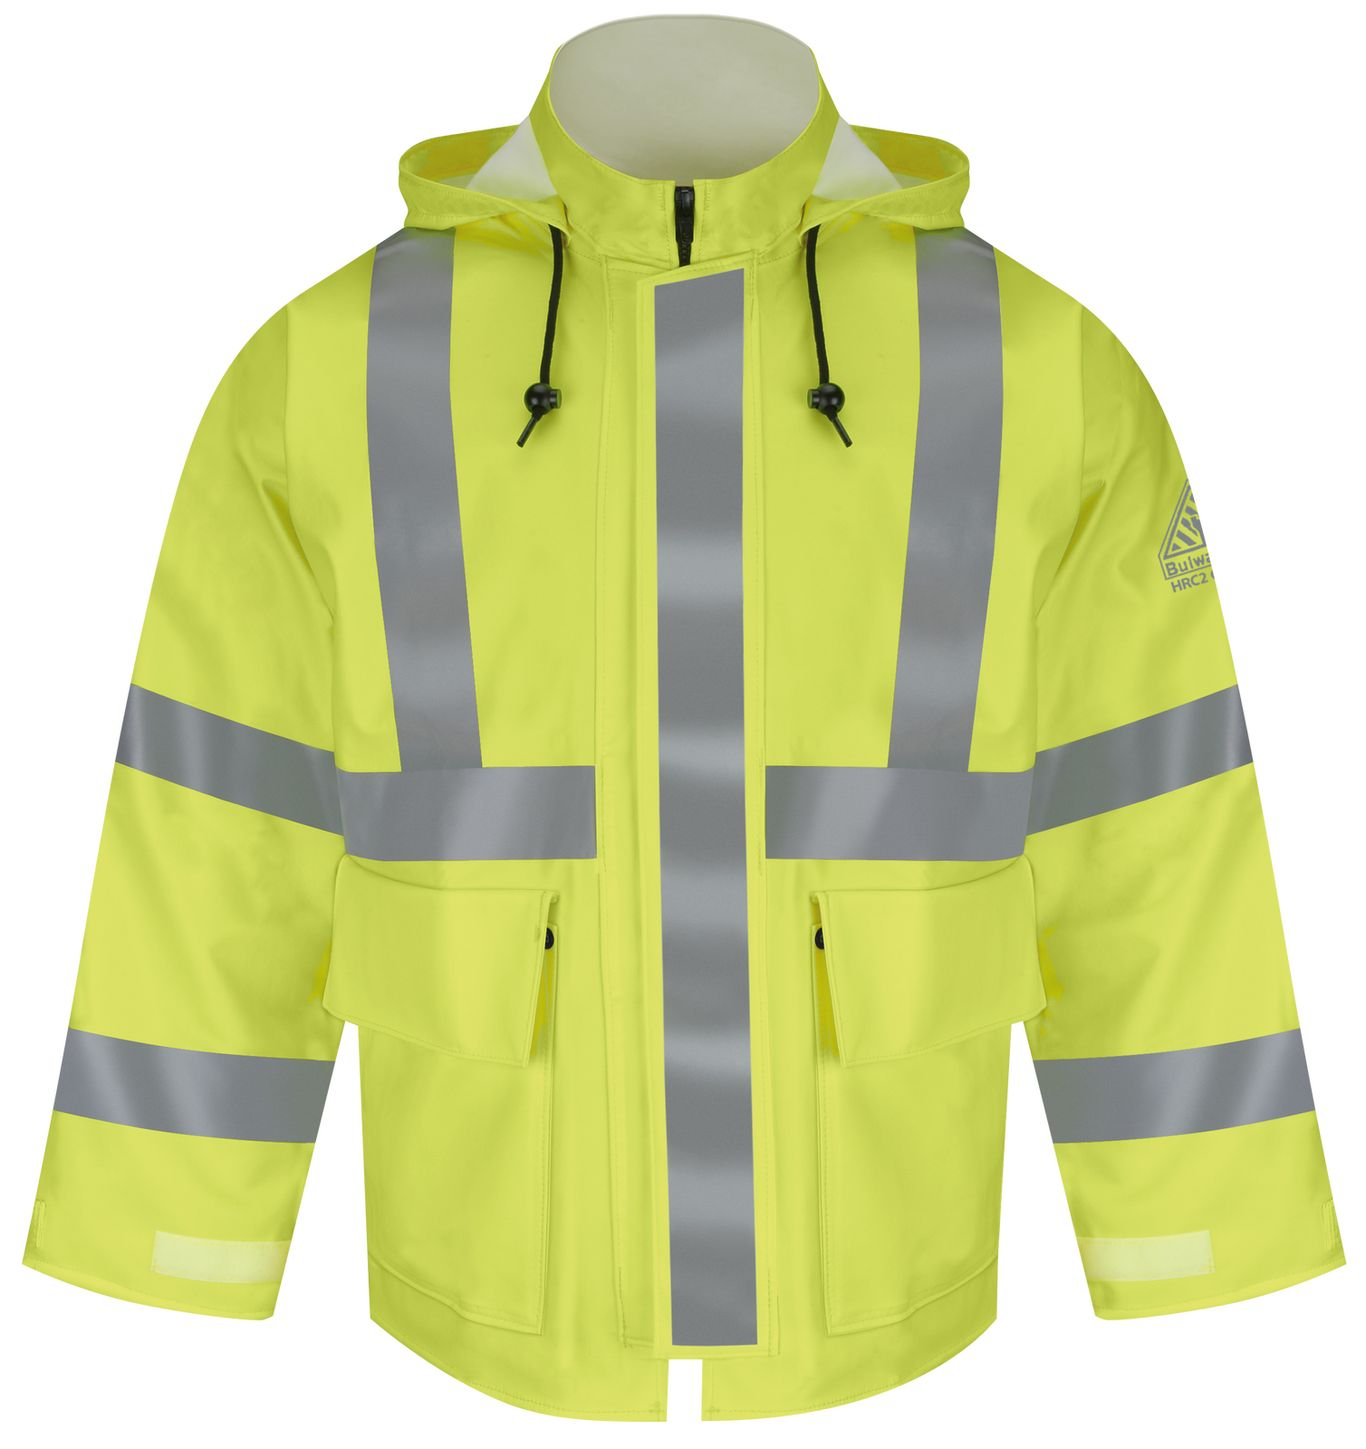 bulwark-fr-hi-visibility-rain-jacket-jxn4-with-hood-yellow-green-front.jpg